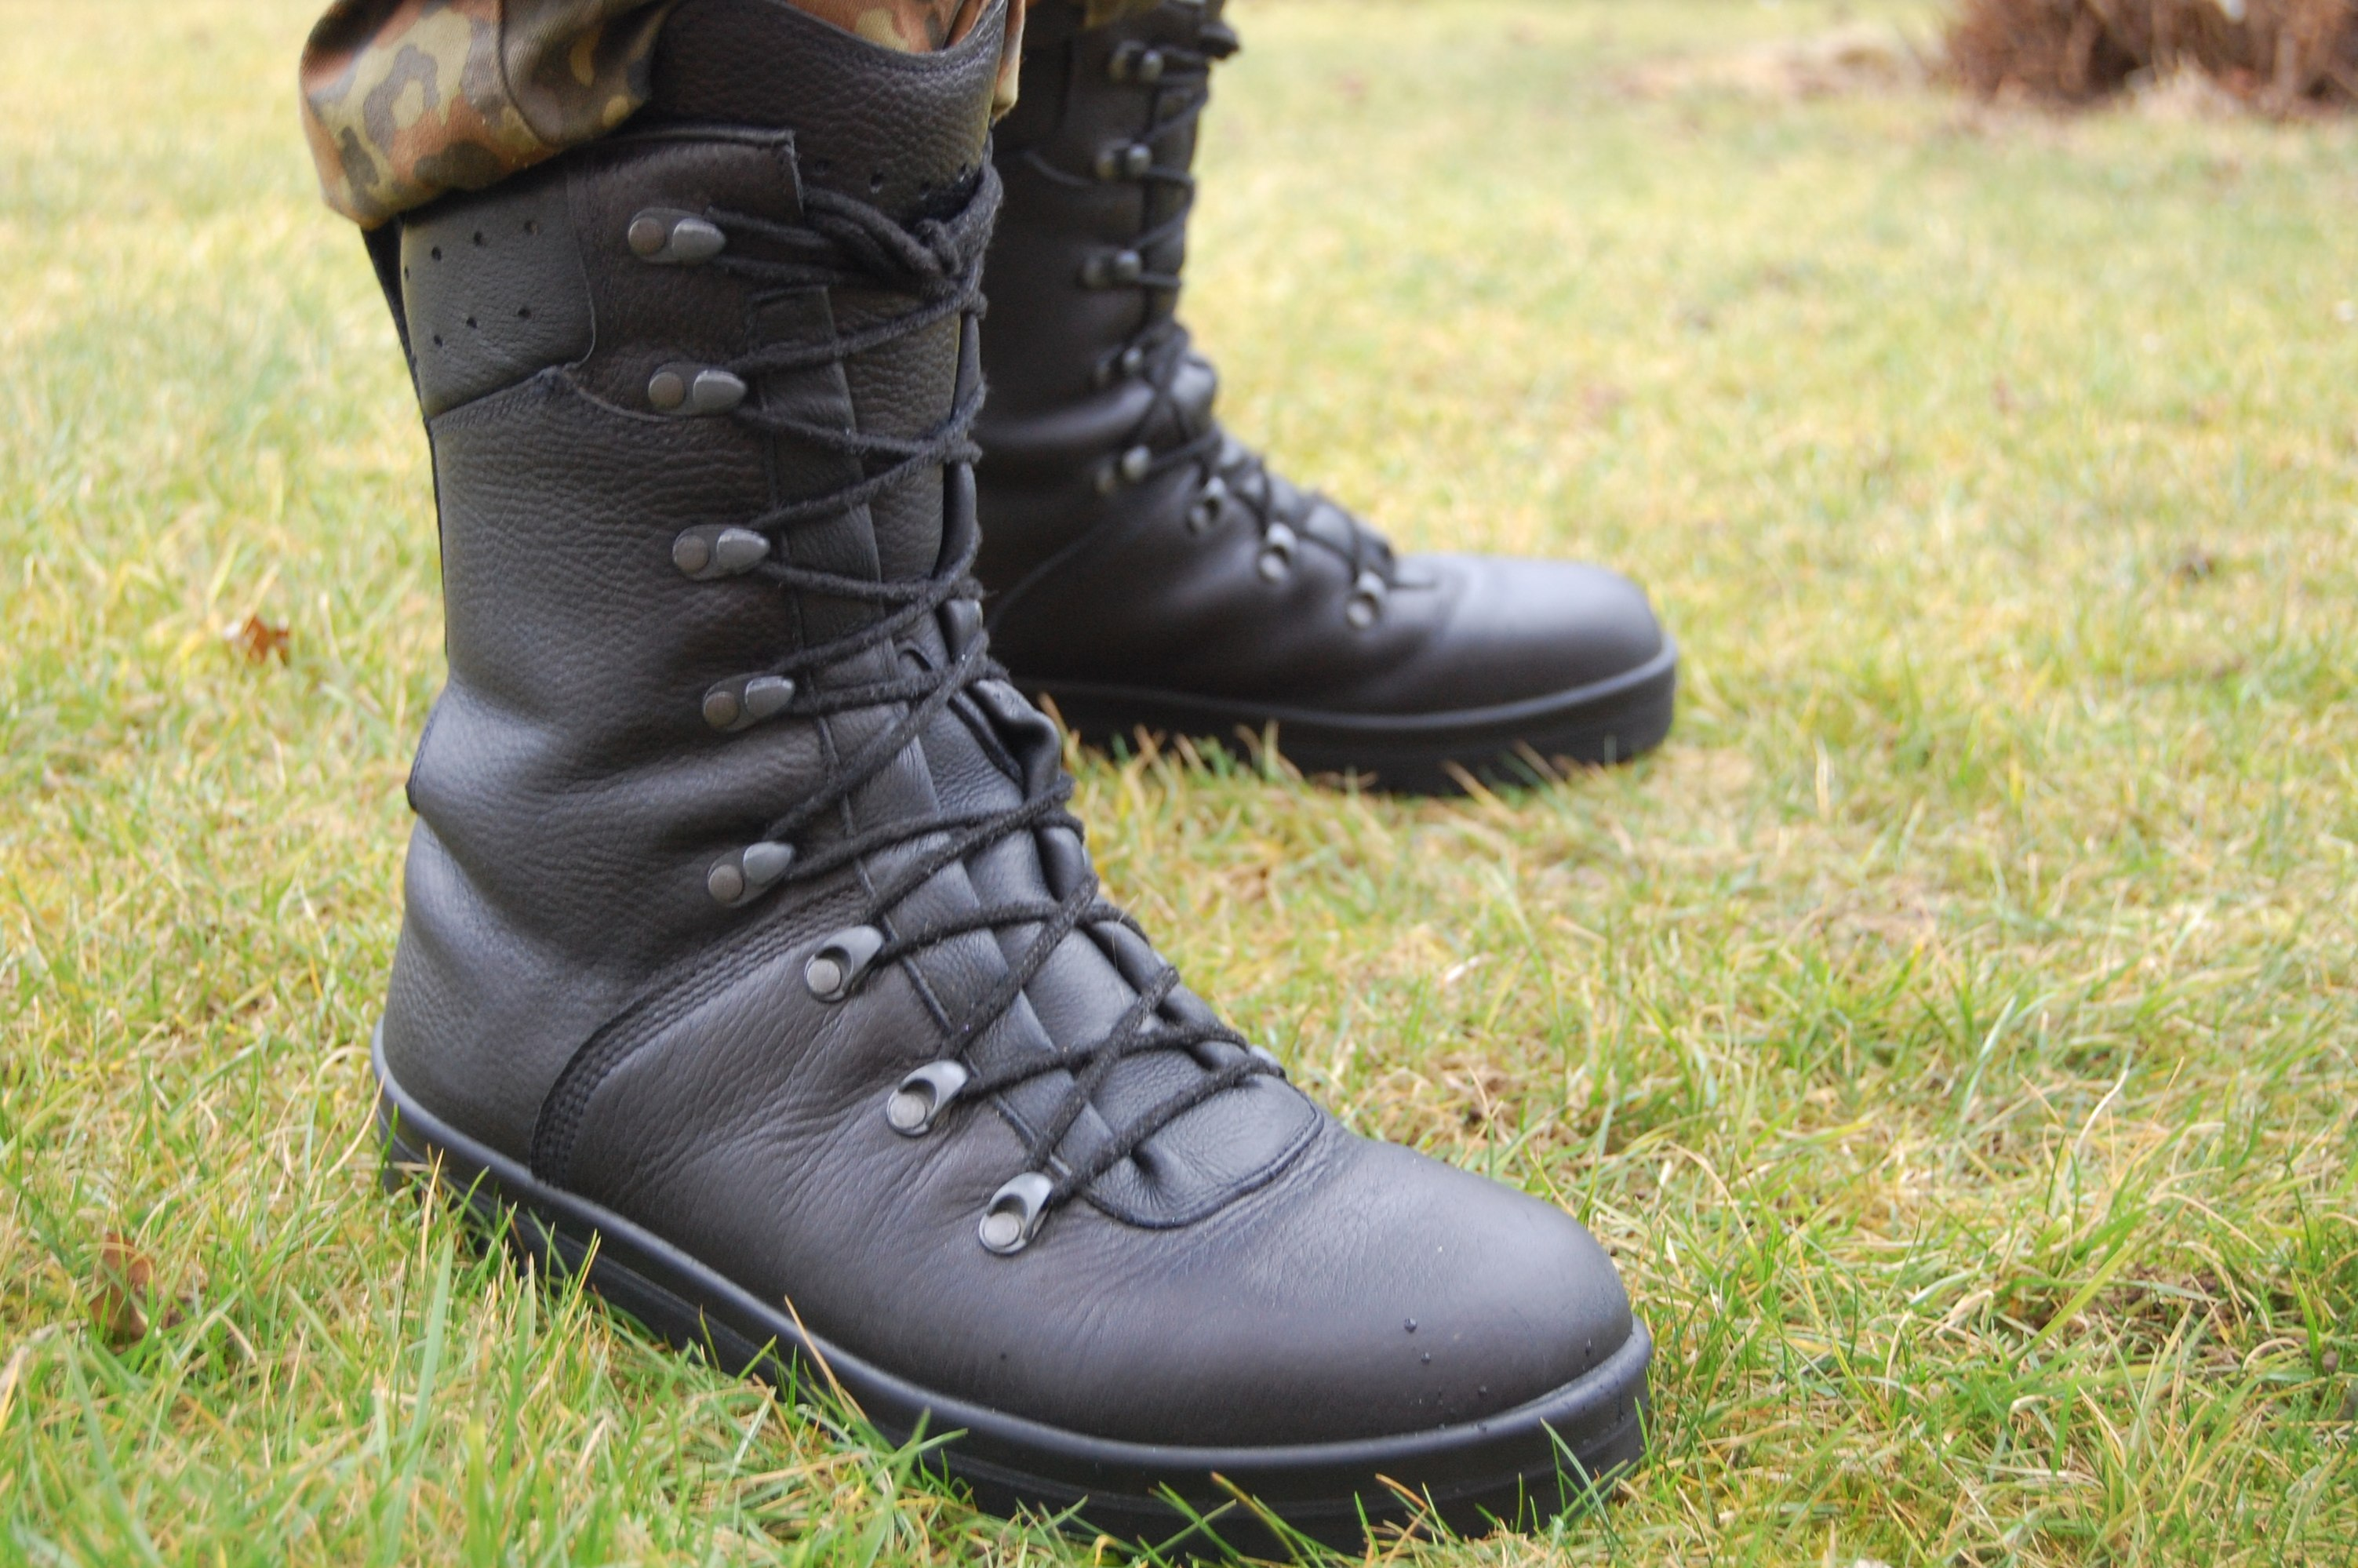 1aebdcc9 Combat boot - The complete information and online sale with free shipping.  Order and buy now for the lowest price in the best online store!